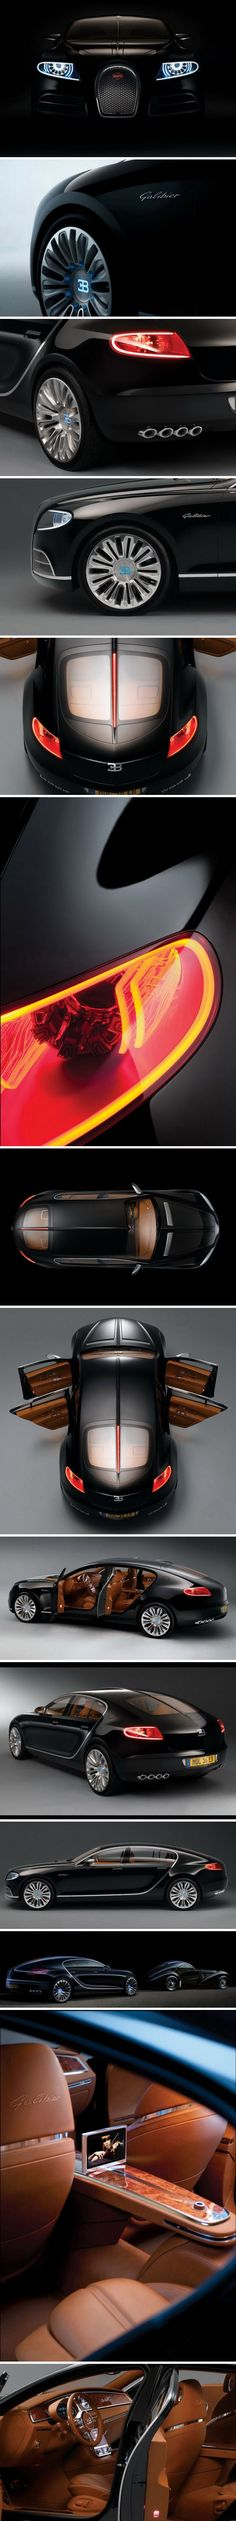 Bugatti 16C Galibier - 1000 HP - priced at 1.4 Mil USD~ LadyLuxuryDesigns